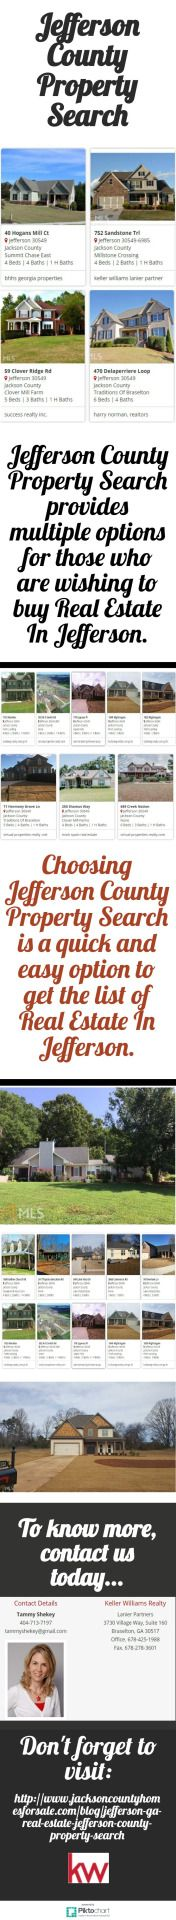 Jefferson County Property Search provides multiple options for those who are wishing to buy Real Estate In Jefferson. For more info, call at: 404-713-7197 or visit:  http://www.jacksoncountyhomesforsale.com/blog/jefferson-ga-real-estate-jefferson-county-property-search